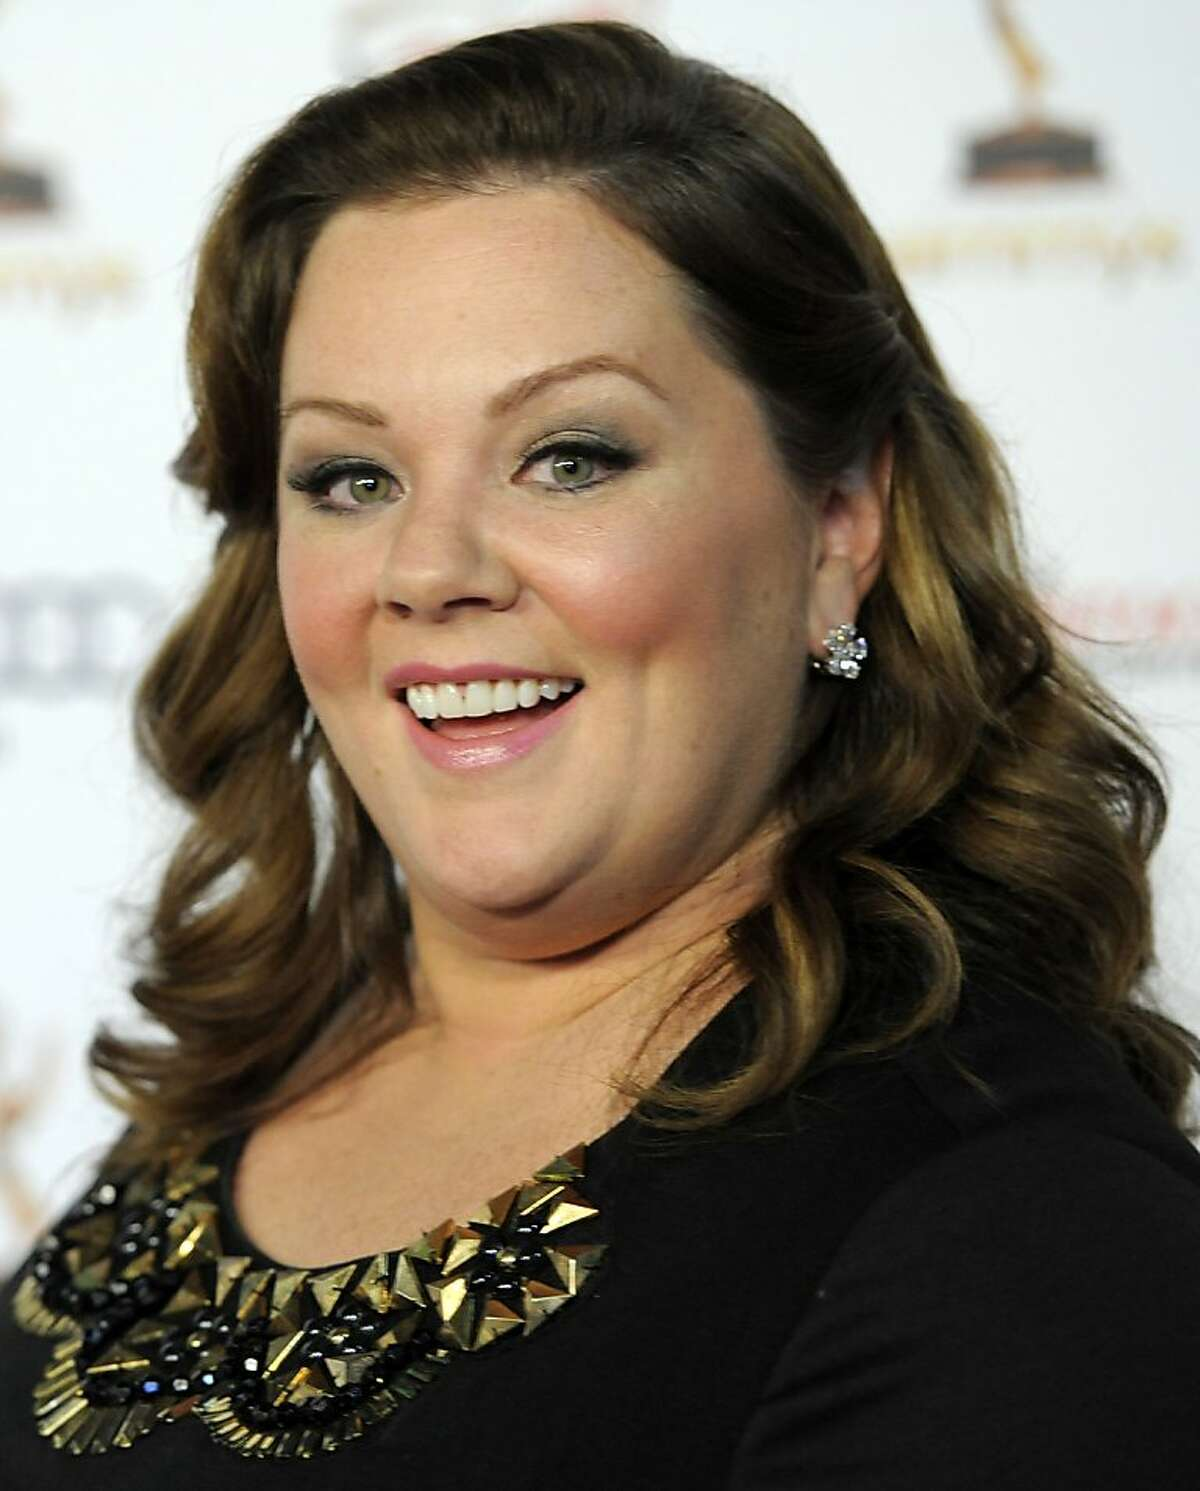 """FILE - In this Sept. 16, 2011 file photo, Melissa McCarthy poses at the 63rd Primetime Emmy Awards Performers Nominee Reception in Los Angeles. McCarthy was nominated Tuesday, Jan. 24, 2012 for an Academy Award for best supporting actress for her role in """"Bridesmaids."""" (AP Photo/Chris Pizzello, file)"""